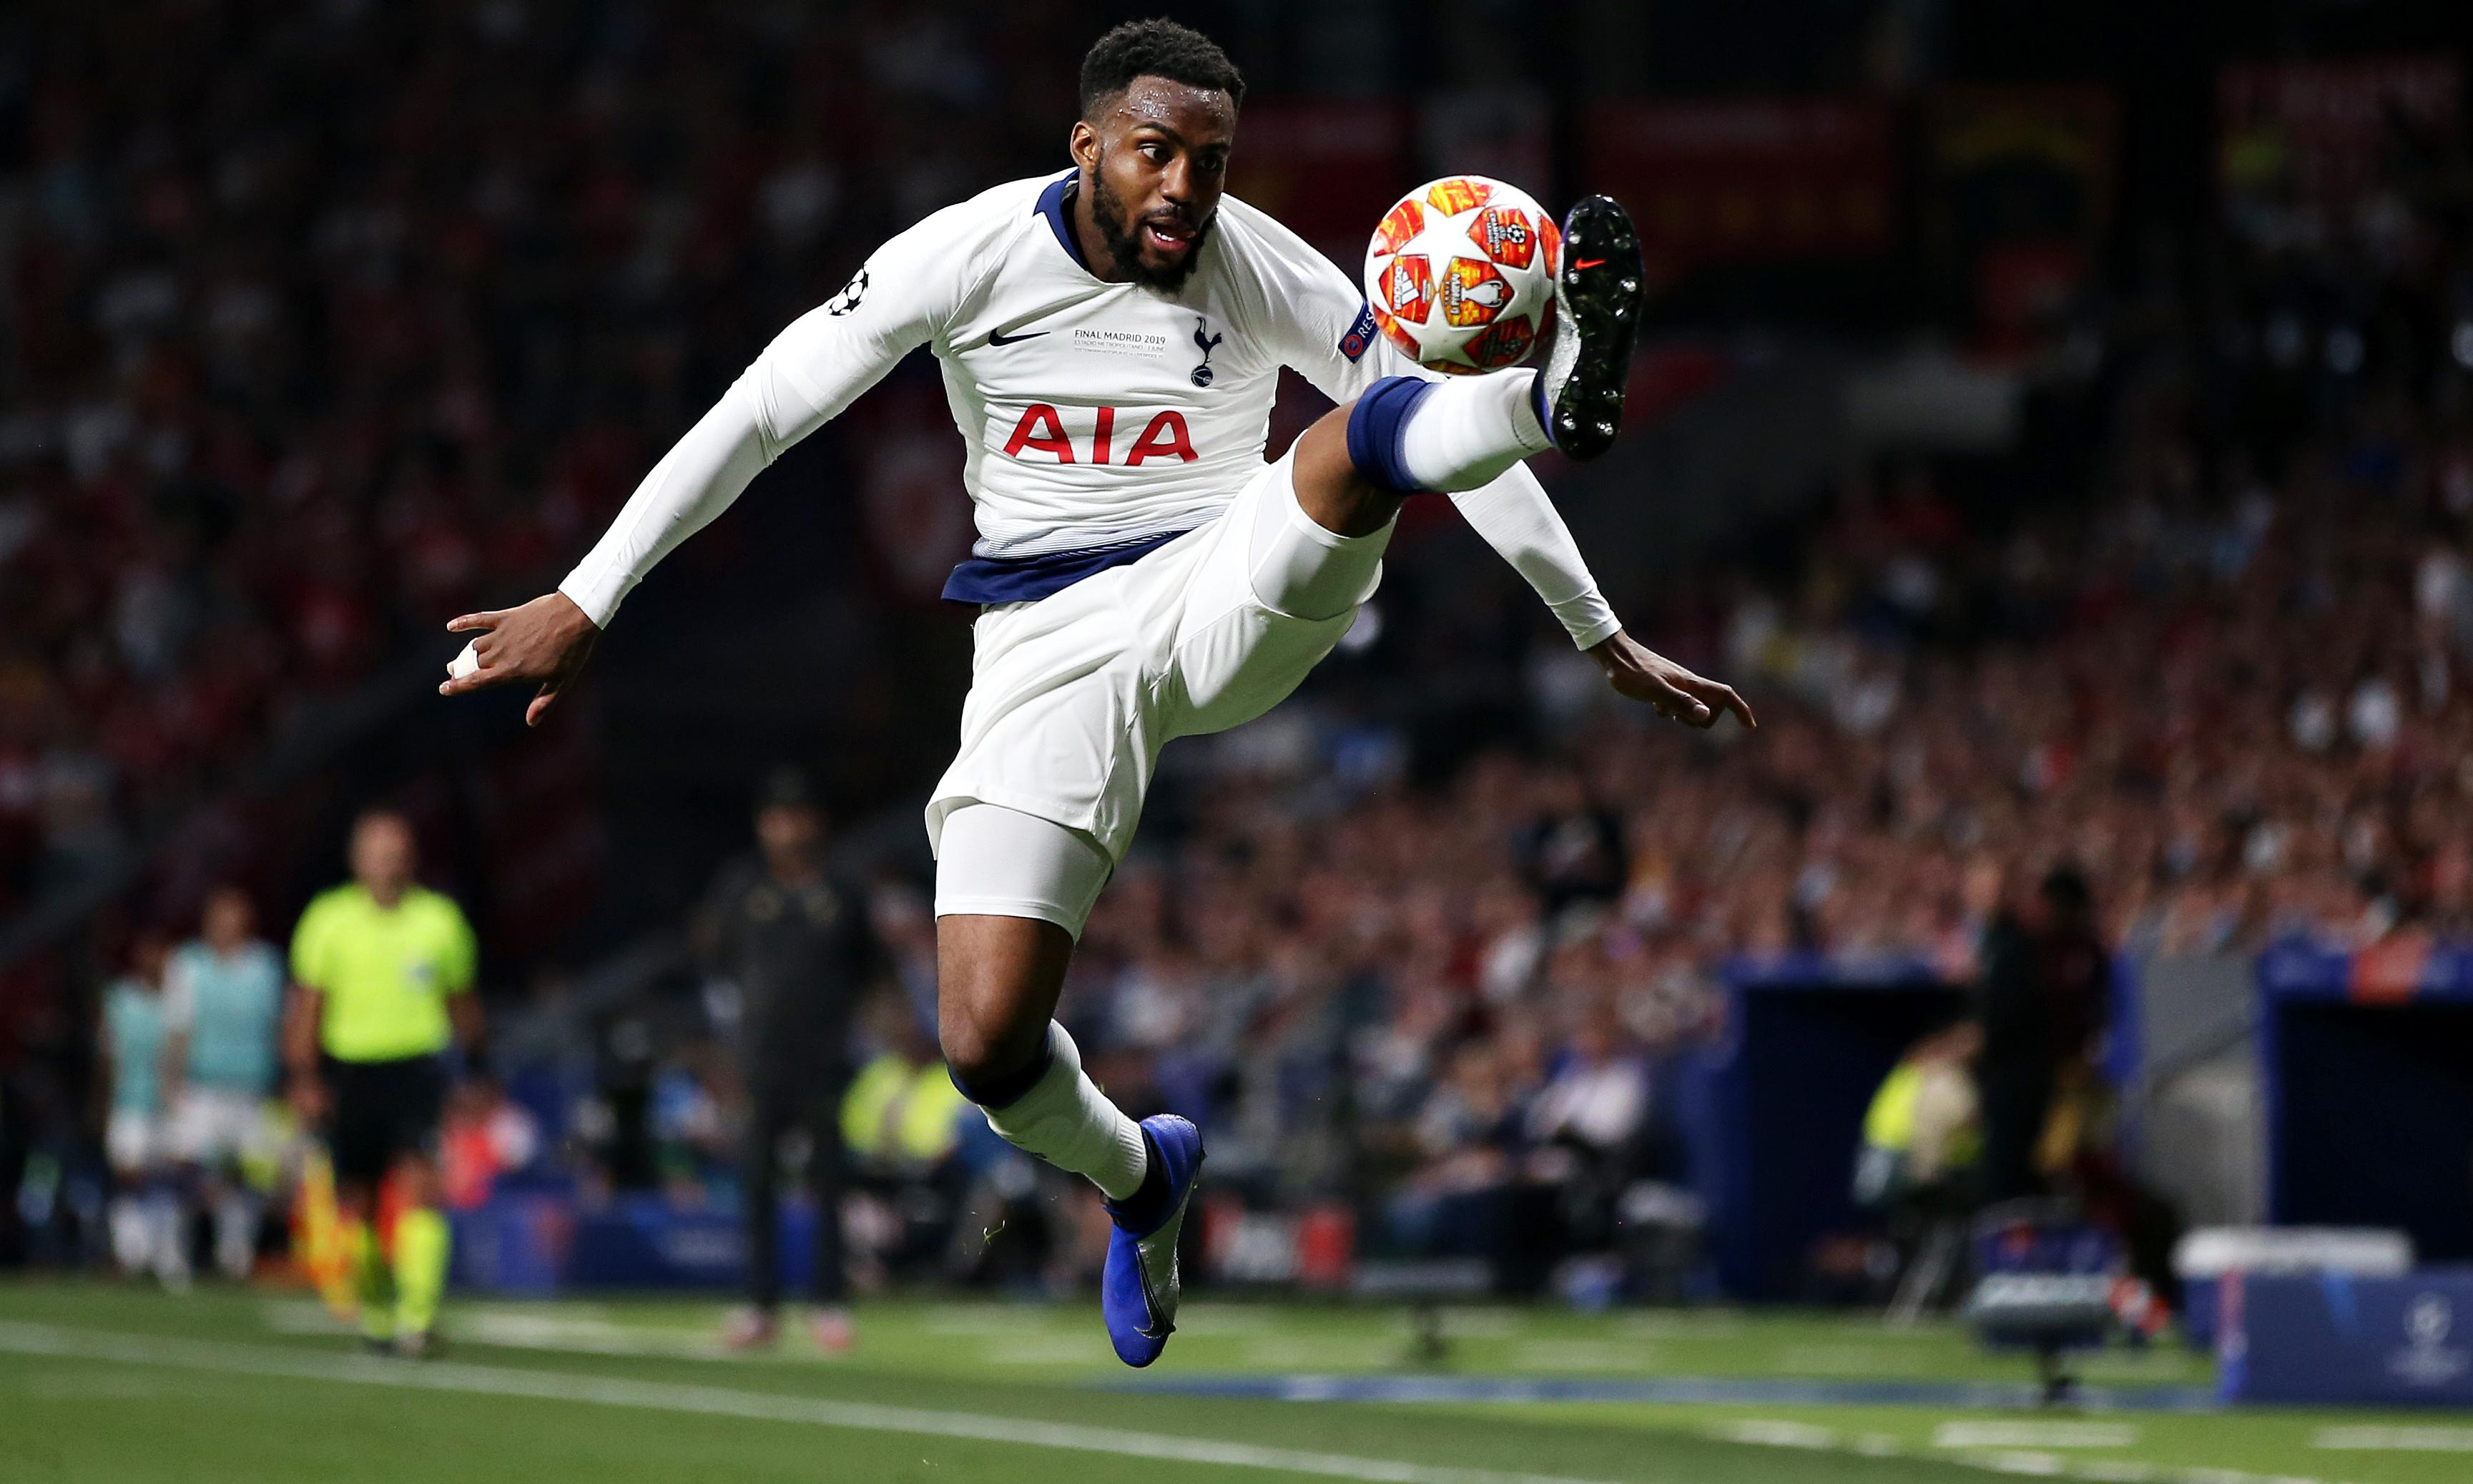 Danny Rose left out of Tottenham's tour 'to explore opportunities' elsewhere